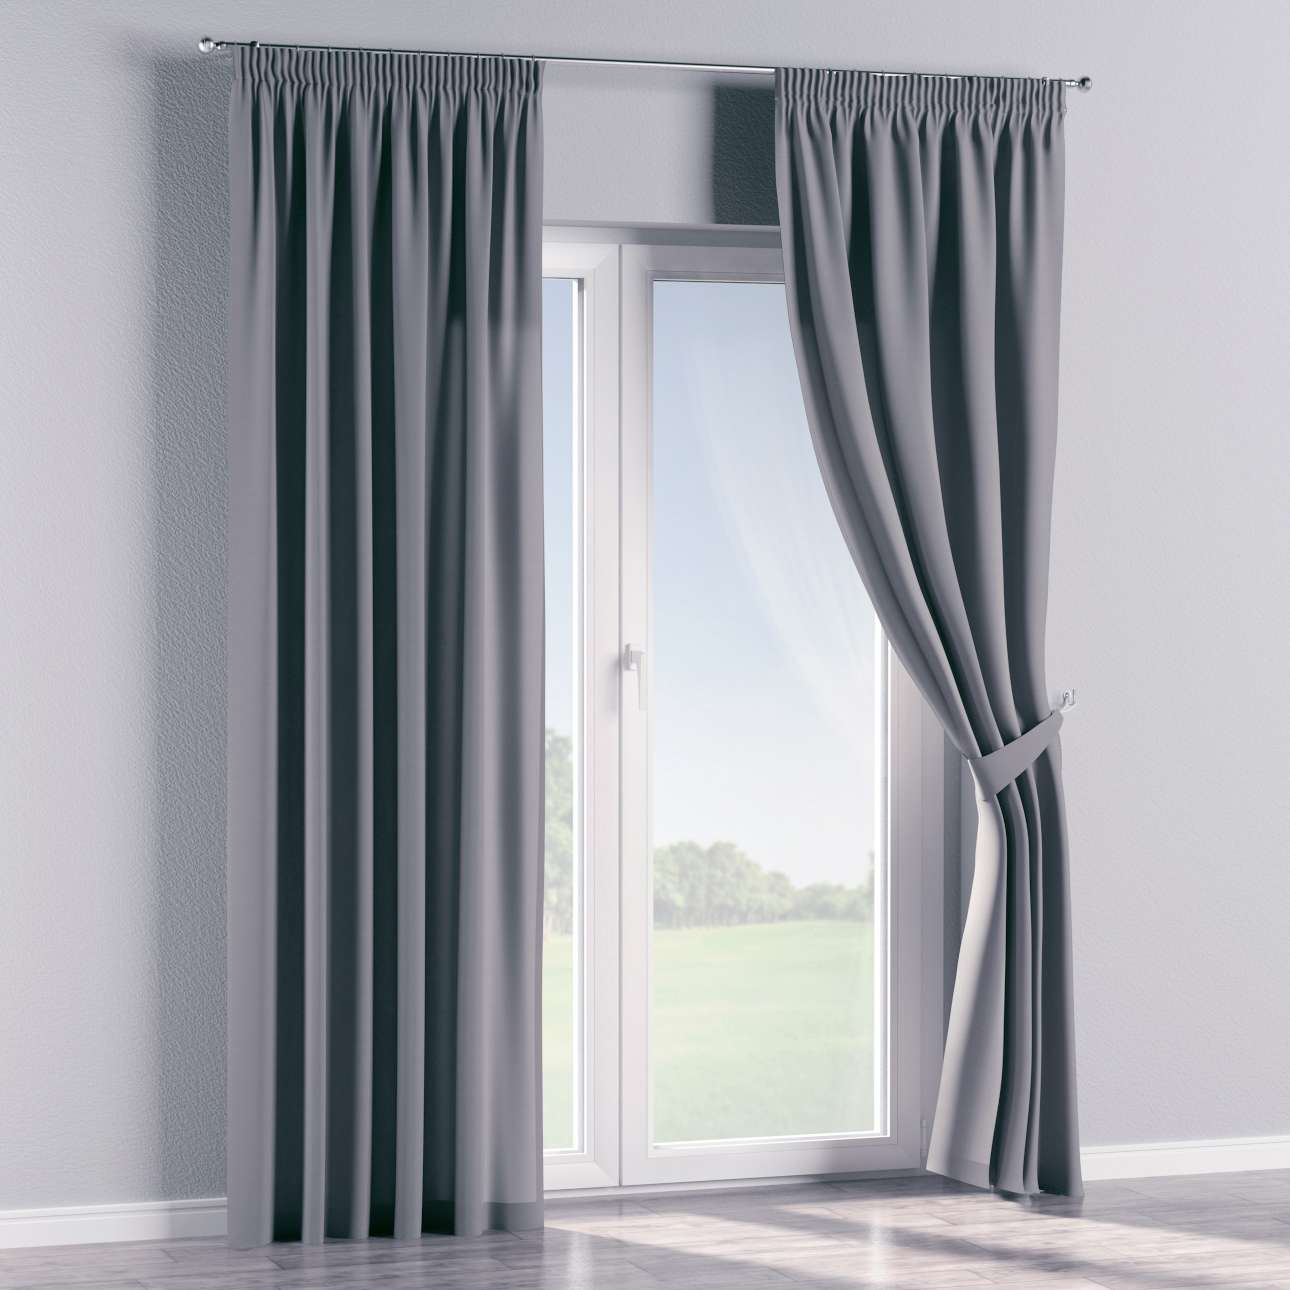 Pencil pleat curtains 130 x 260 cm (51 x 102 inch) in collection Cotton Panama, fabric: 702-07